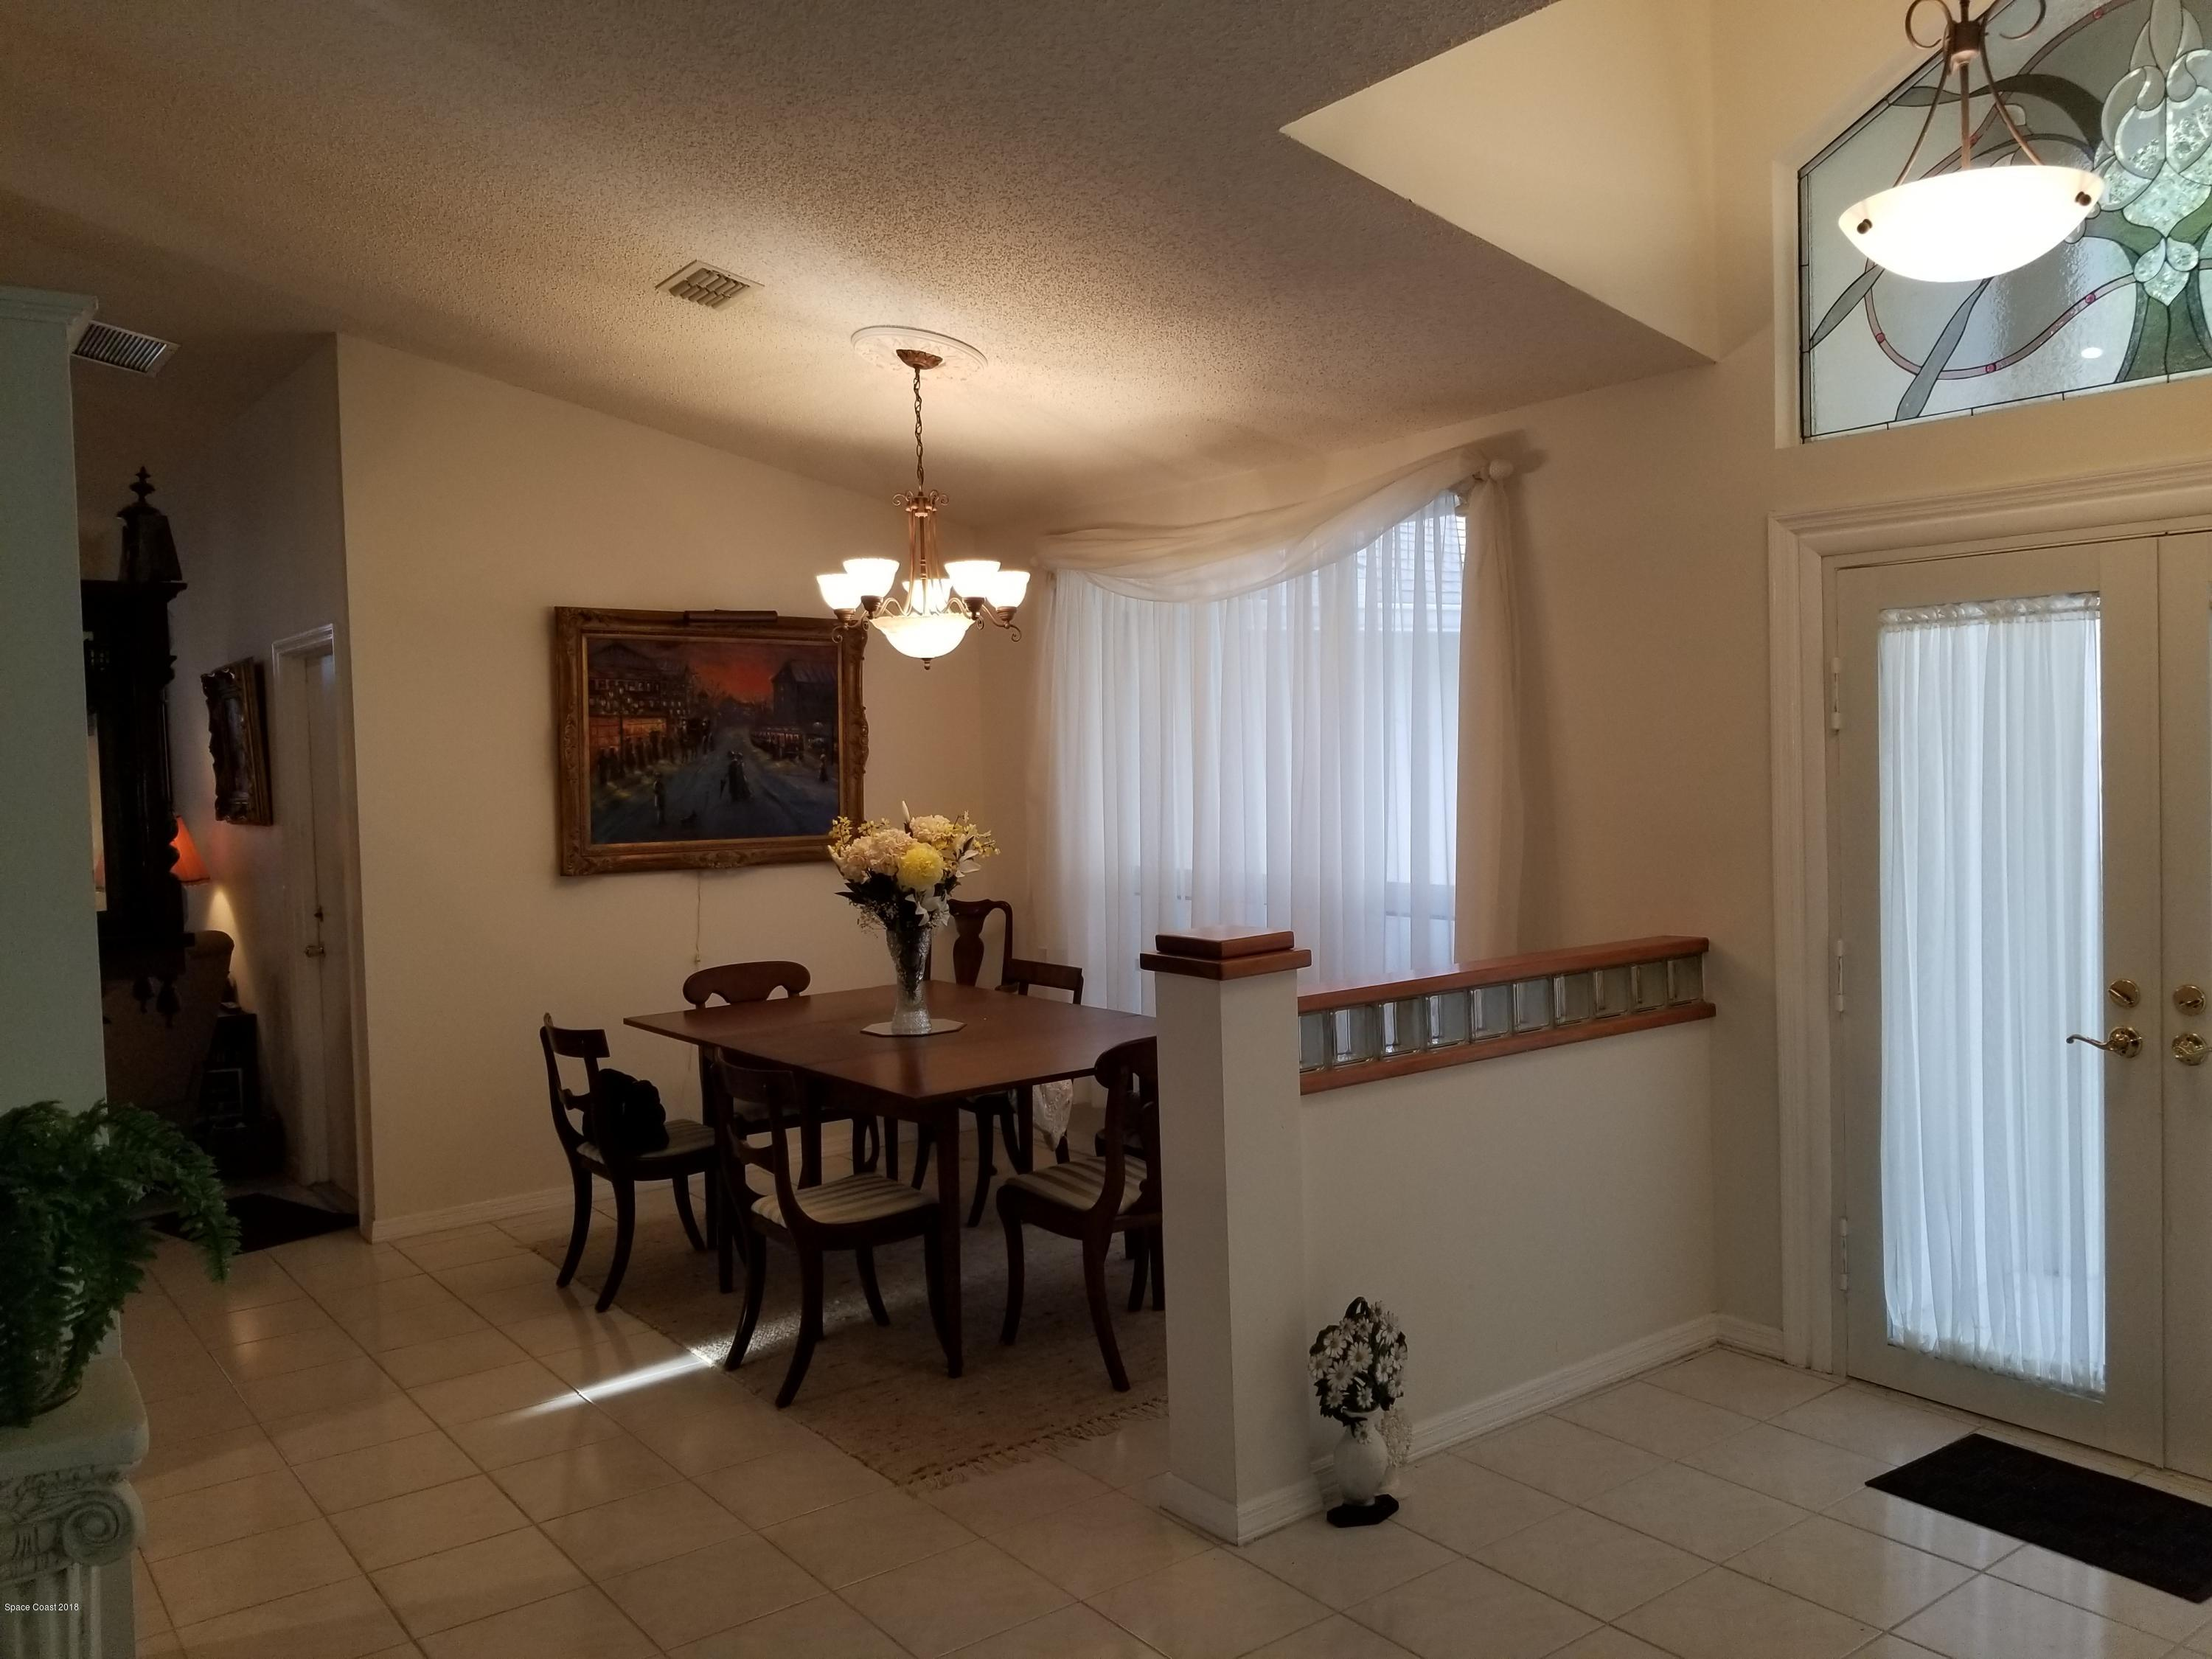 Additional photo for property listing at 114 Tradewinds 114 Tradewinds Indialantic, Florida 32903 United States